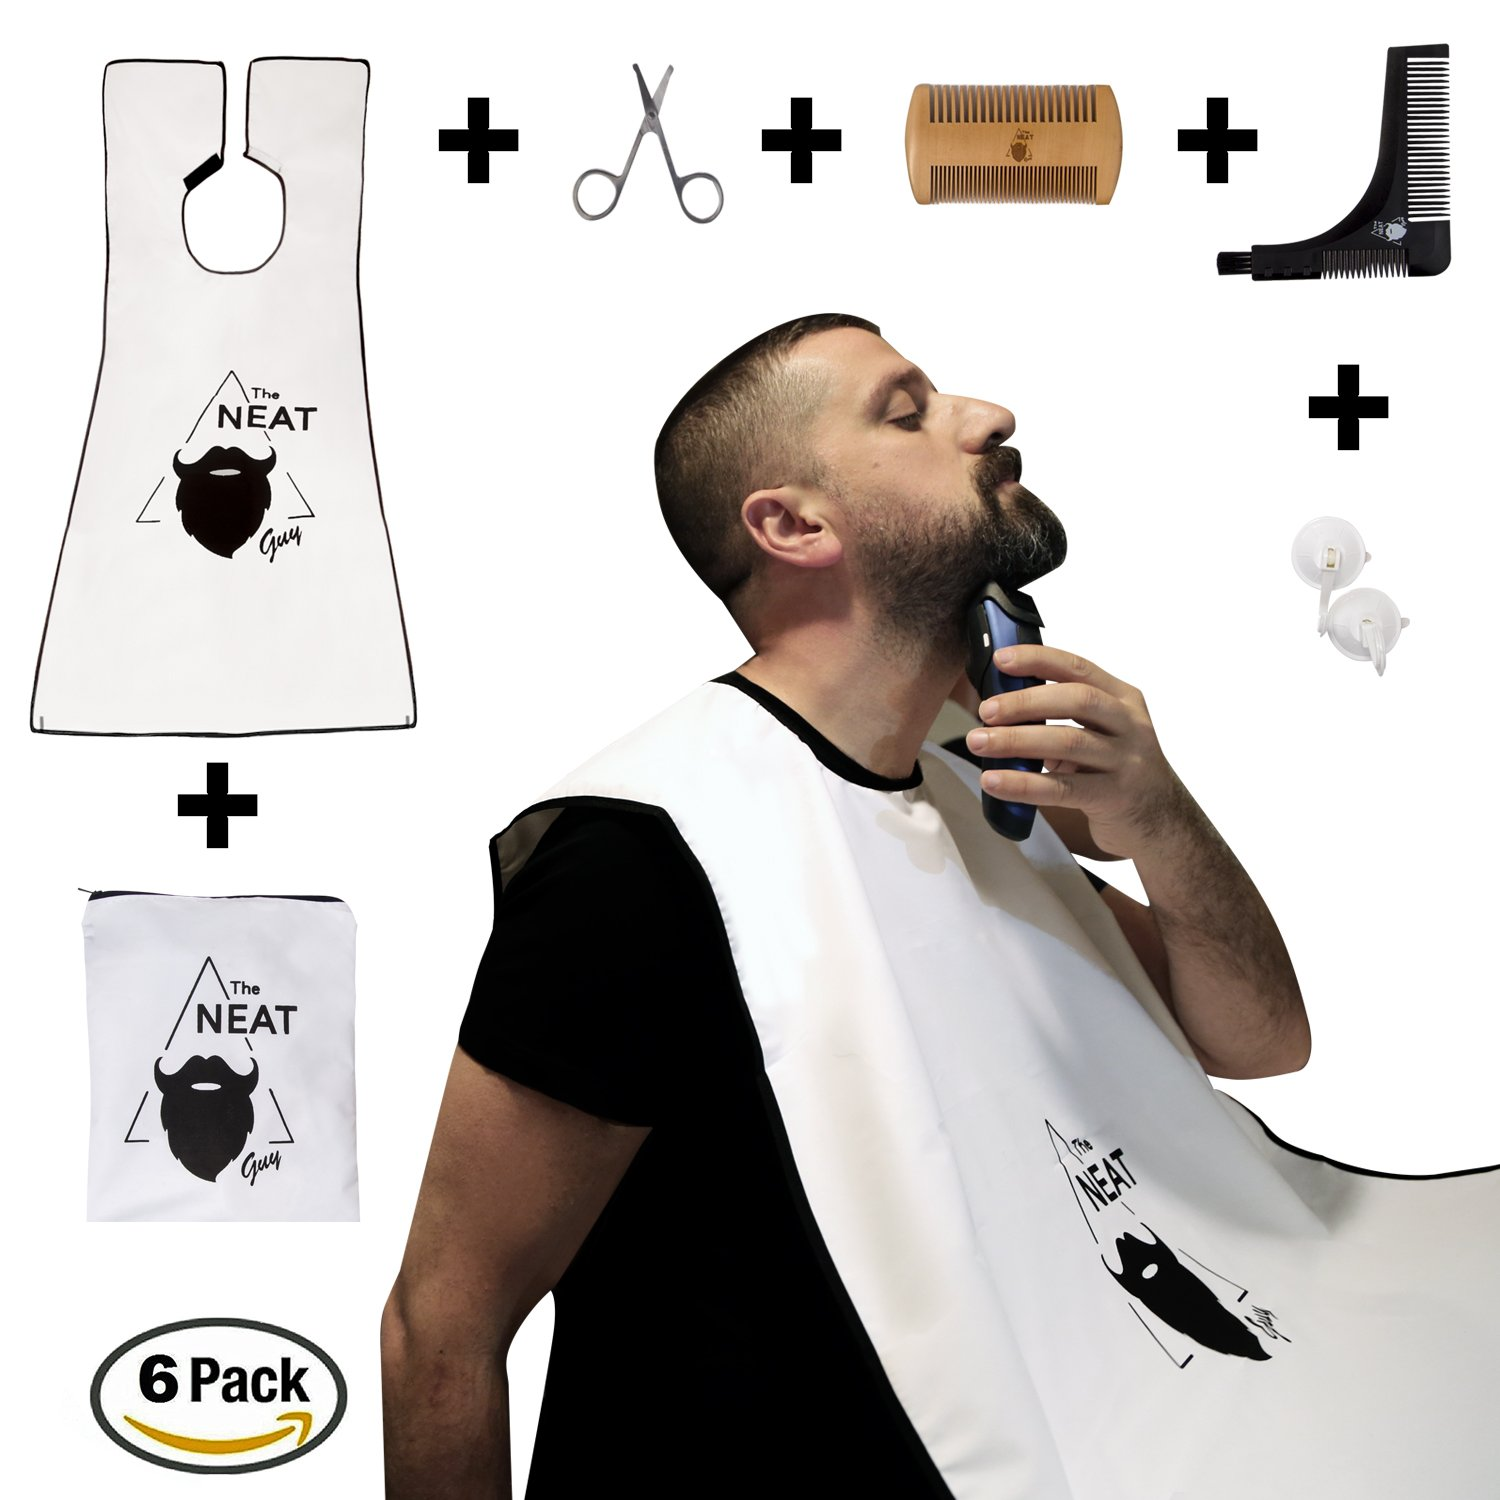 The Neat Guy 6-PACK Beard Kit with Beard Apron/Bib for Mess-Free Shaving + Shaping Tool + Comb + Scissor + Bag, All you Need for a Good, Clean Shave, The Perfect Gift E-Products